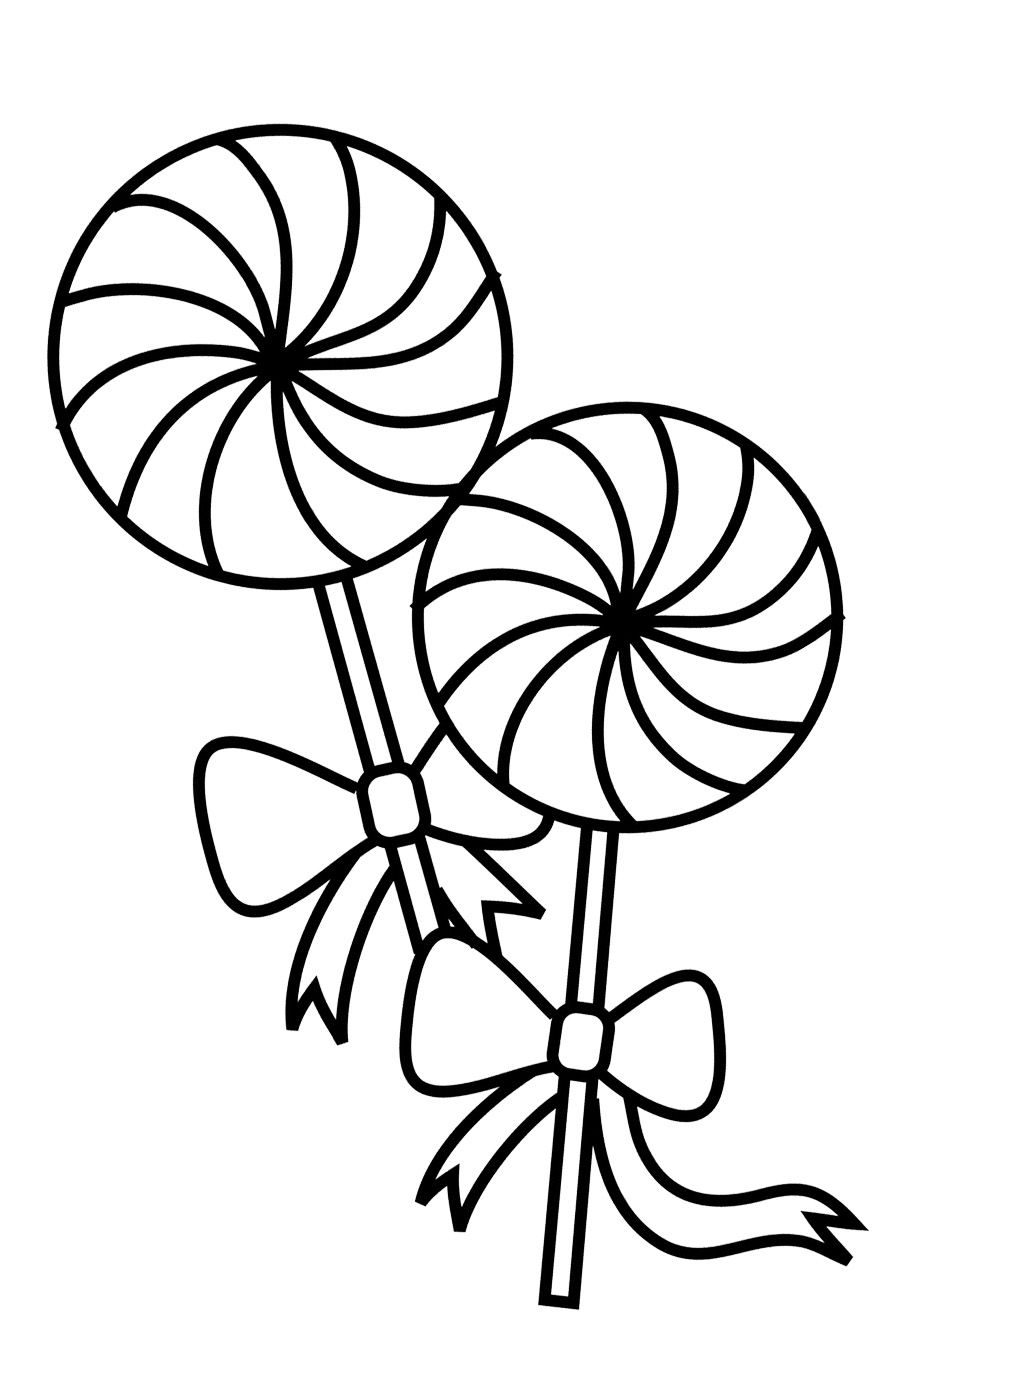 Two Lollipop Coloring Page Candy Coloring Pages Free Printable Coloring Pages Free Printable Coloring